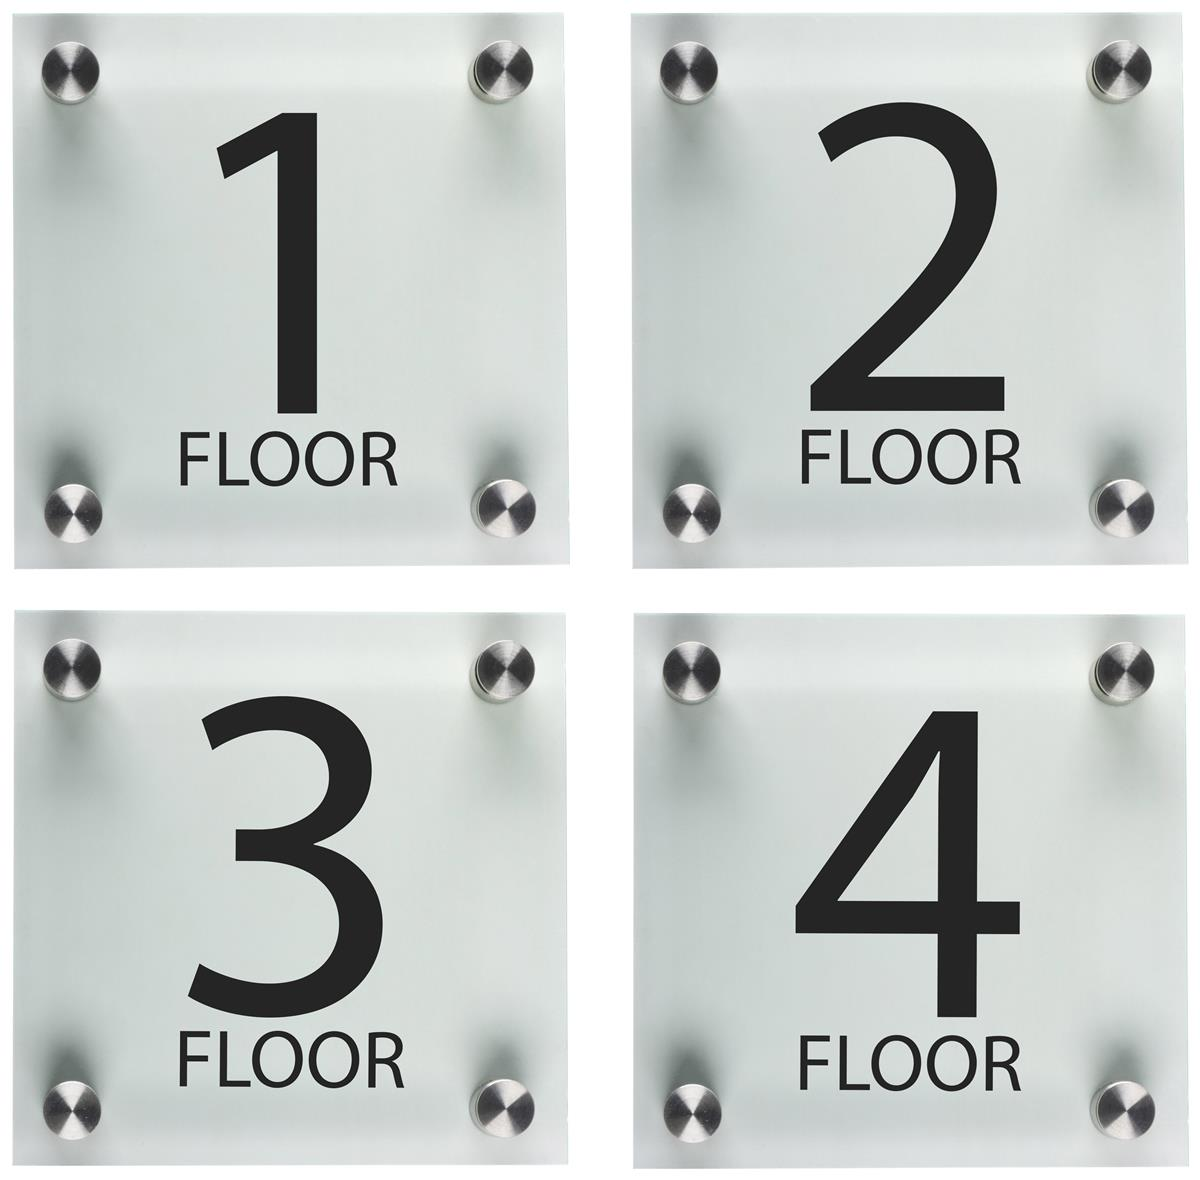 Stairwell Floor Level Signs 6 Quot X 6 Quot Acrylic Panels